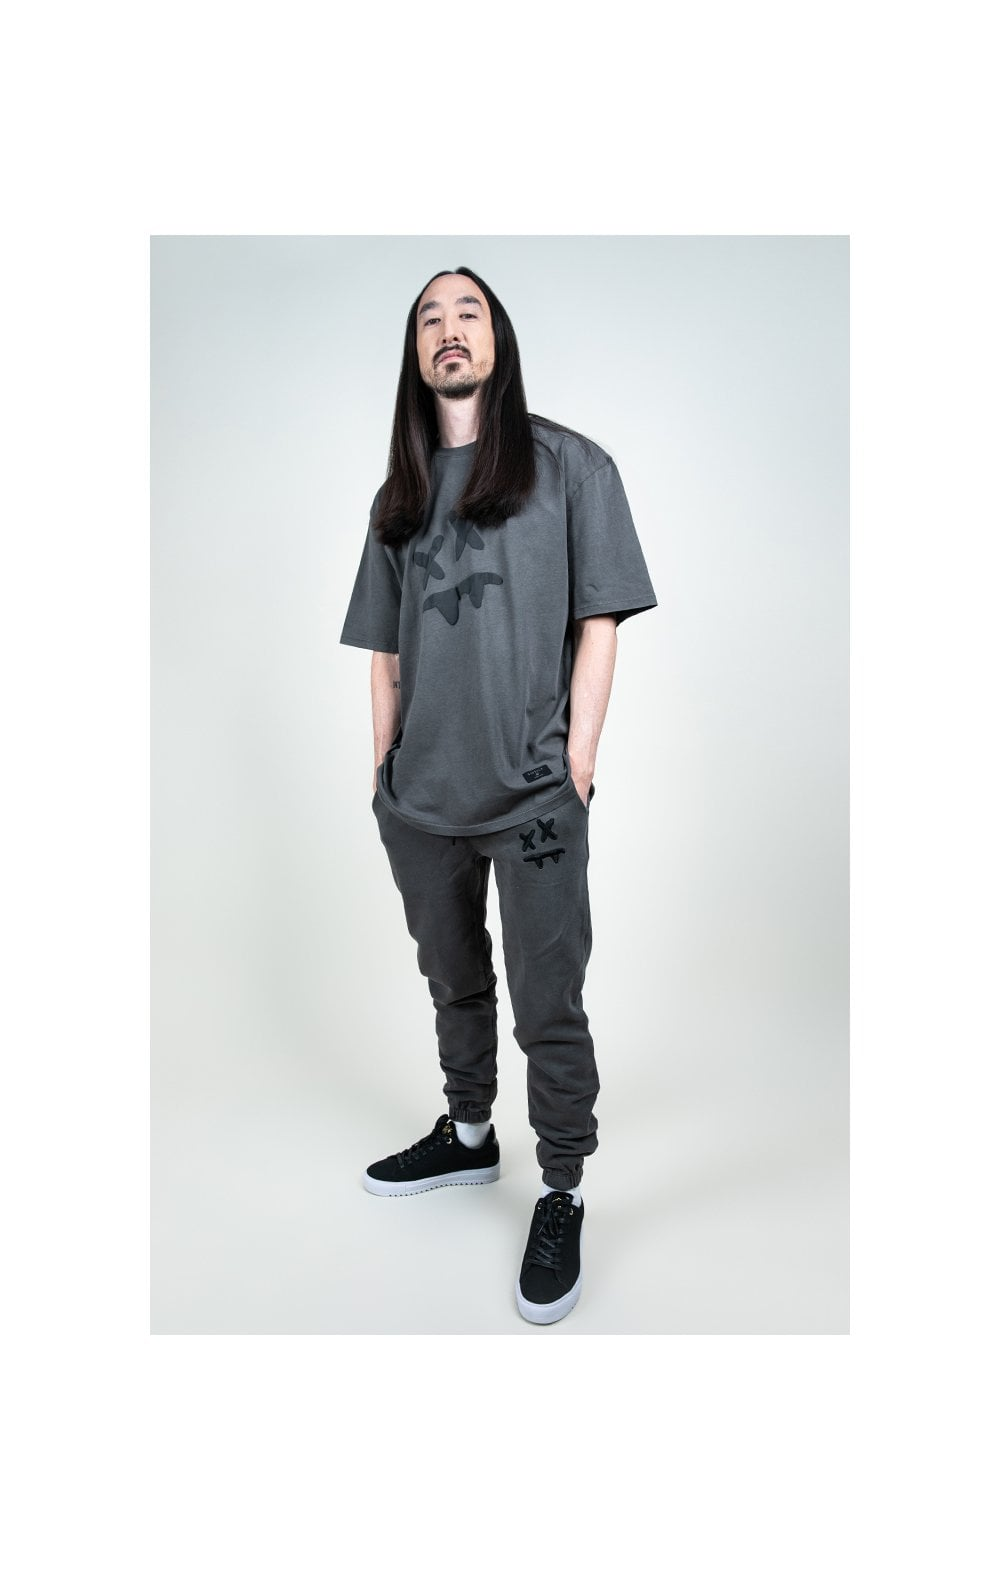 Load image into Gallery viewer, SikSilk X Steve Aoki Joggers - Washed Grey (4)